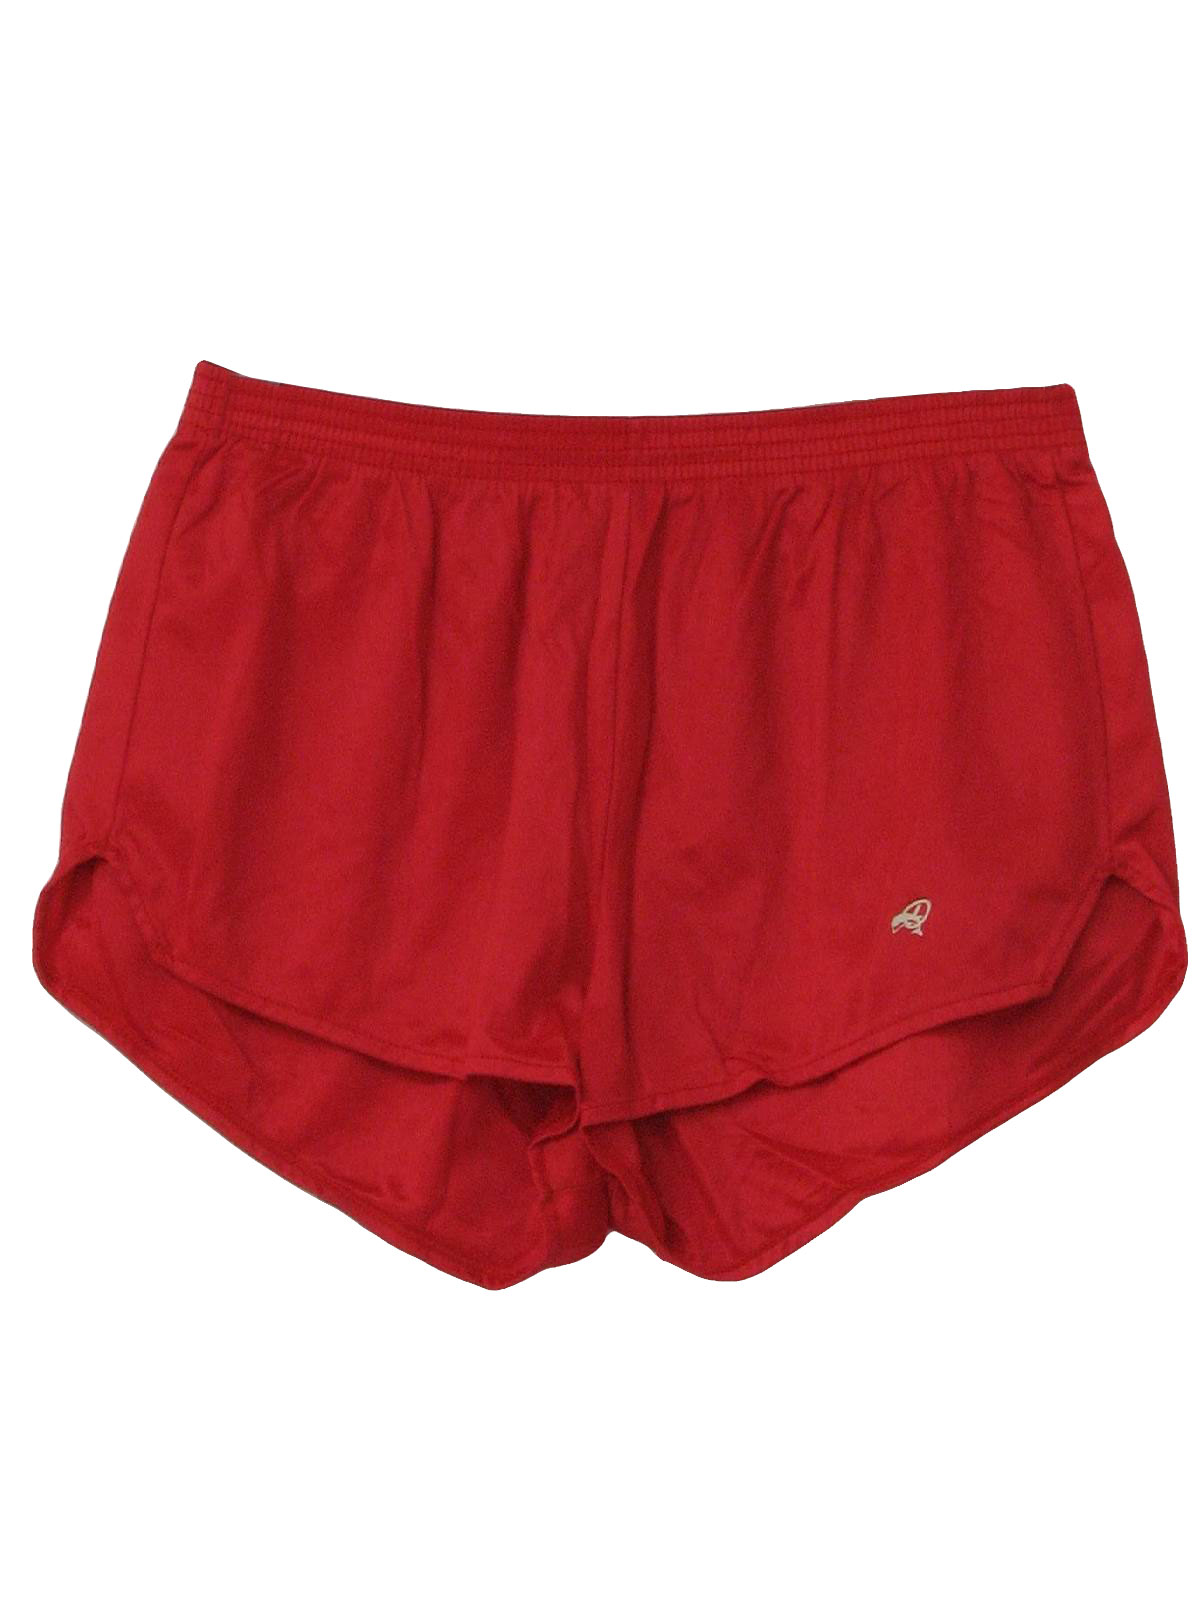 We offer men's, women's and kids' running shorts from the biggest and best known brands in the running clothes market so shop with confidence today! Red (2) White Karrimor Short Running Tights Mens. £ Sizes: XS, S, M, L, XL, 2XL. Karrimor Short Running Tights Mens.